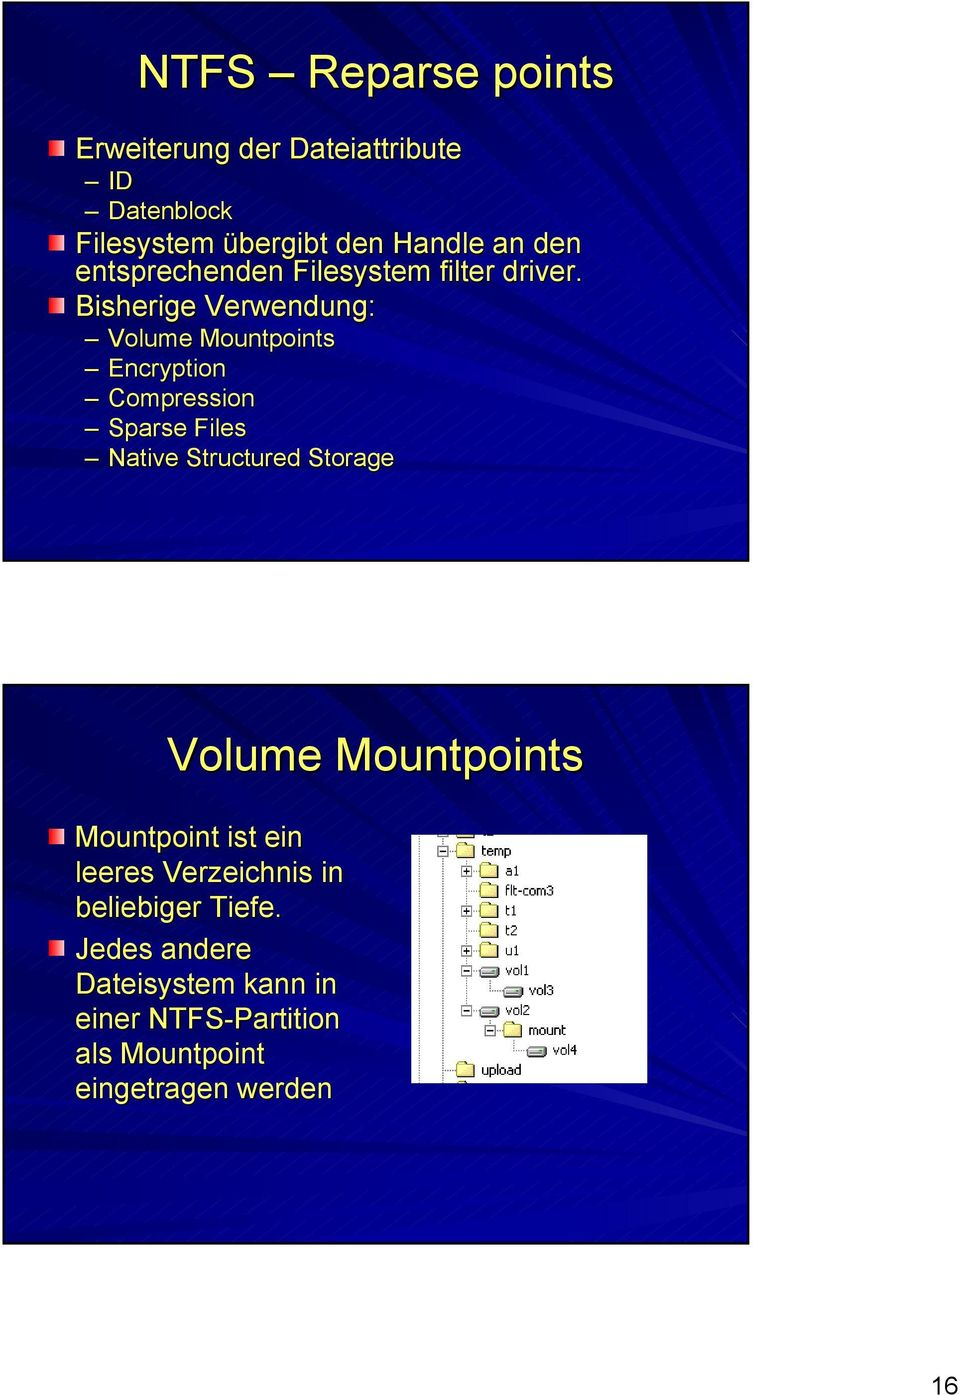 Bisherige Verwendung: Volume Mountpoints Encryption Compression Sparse Files Native Structured Storage